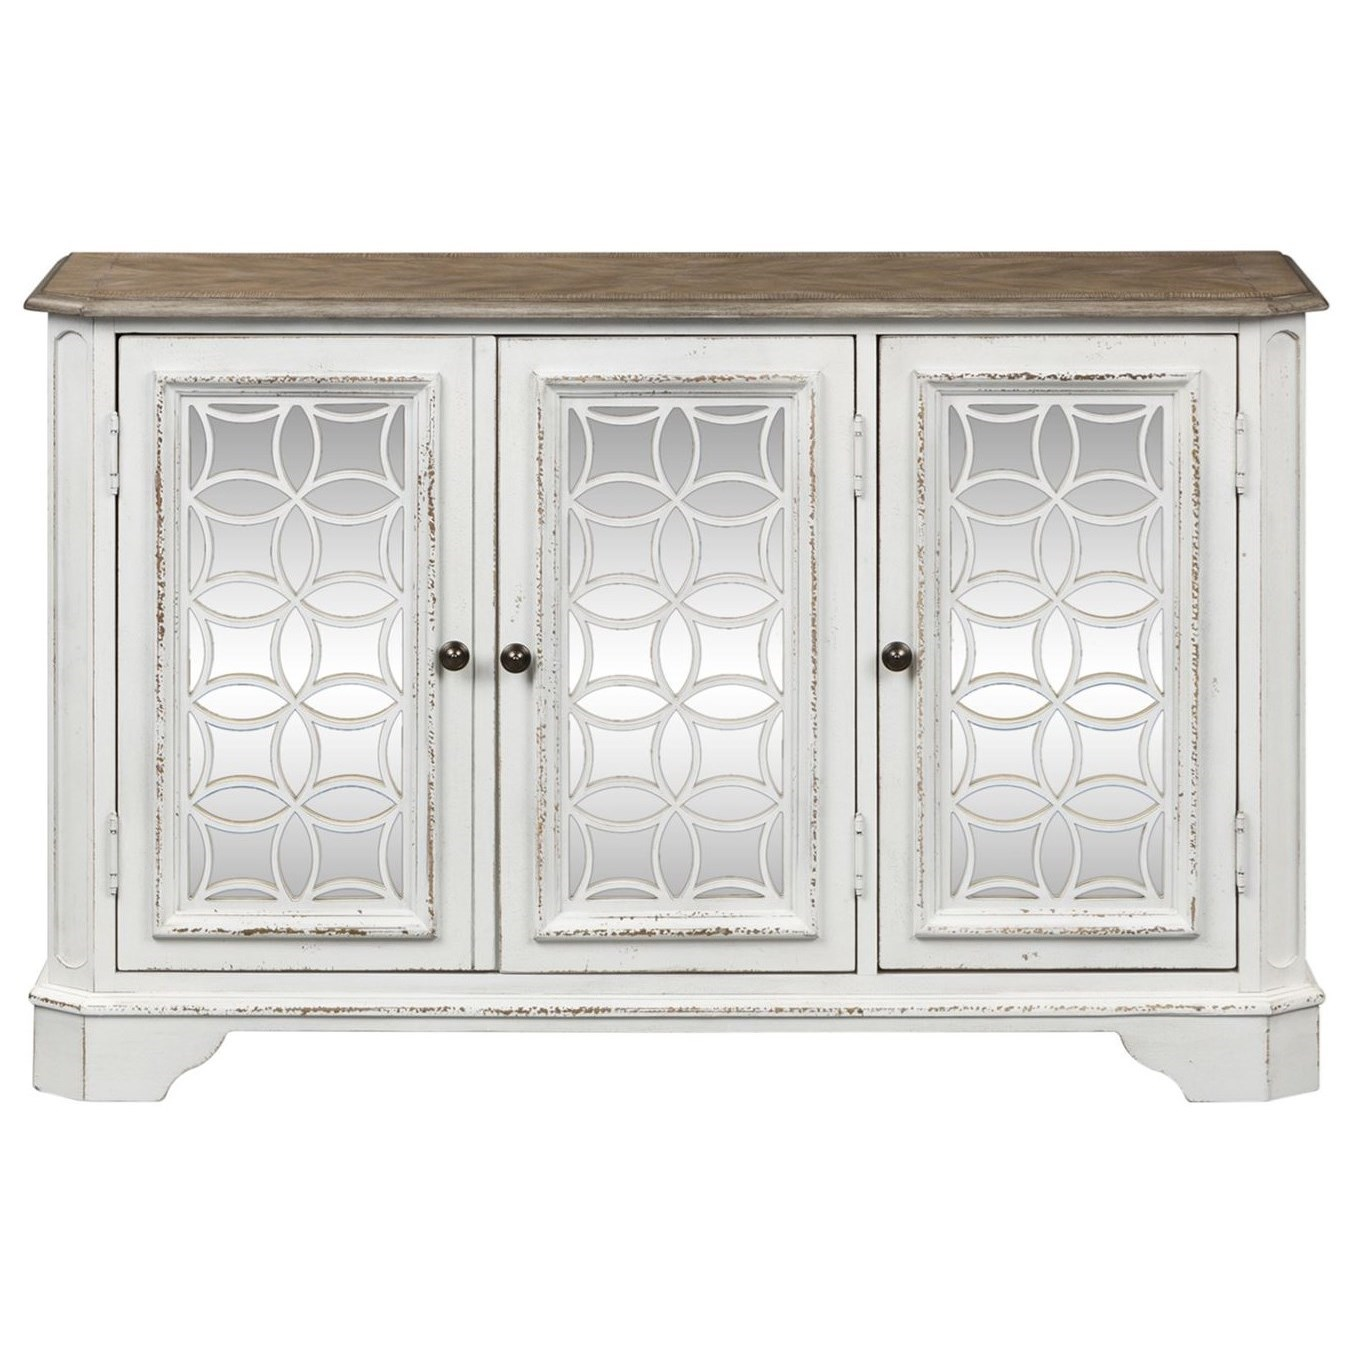 Magnolia Manor TV Console by Liberty Furniture at Northeast Factory Direct